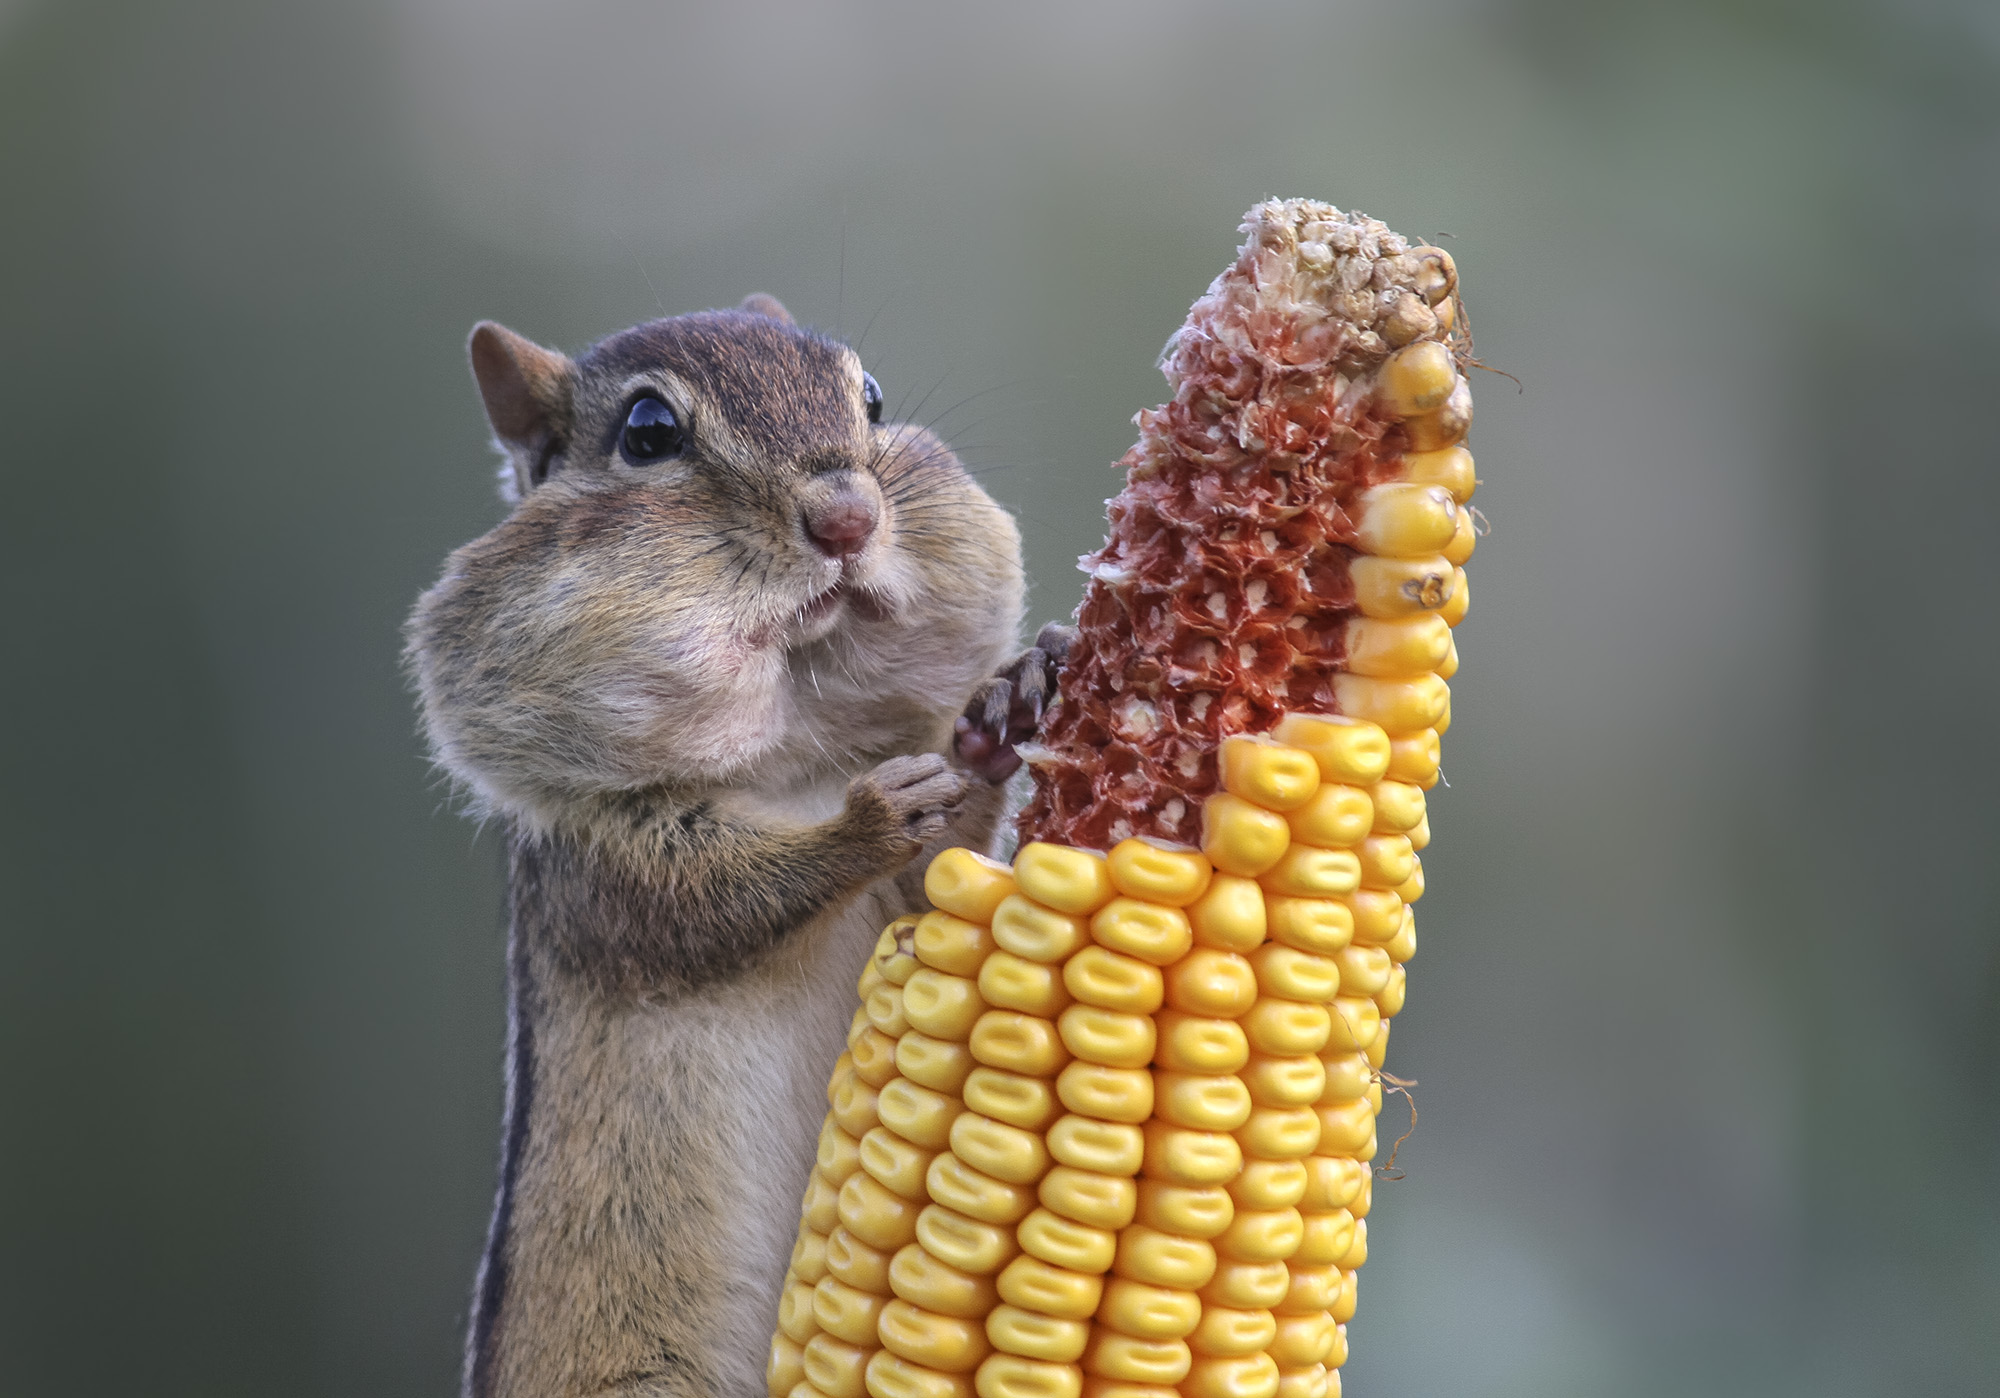 Image of: 2018 An Eastern Chipmunk In Ontario Canada Stuffing Its Cheeks With Corn Photo By Barb Pbs Photos These Wildlife Photography Winners Will Put Smile On Your